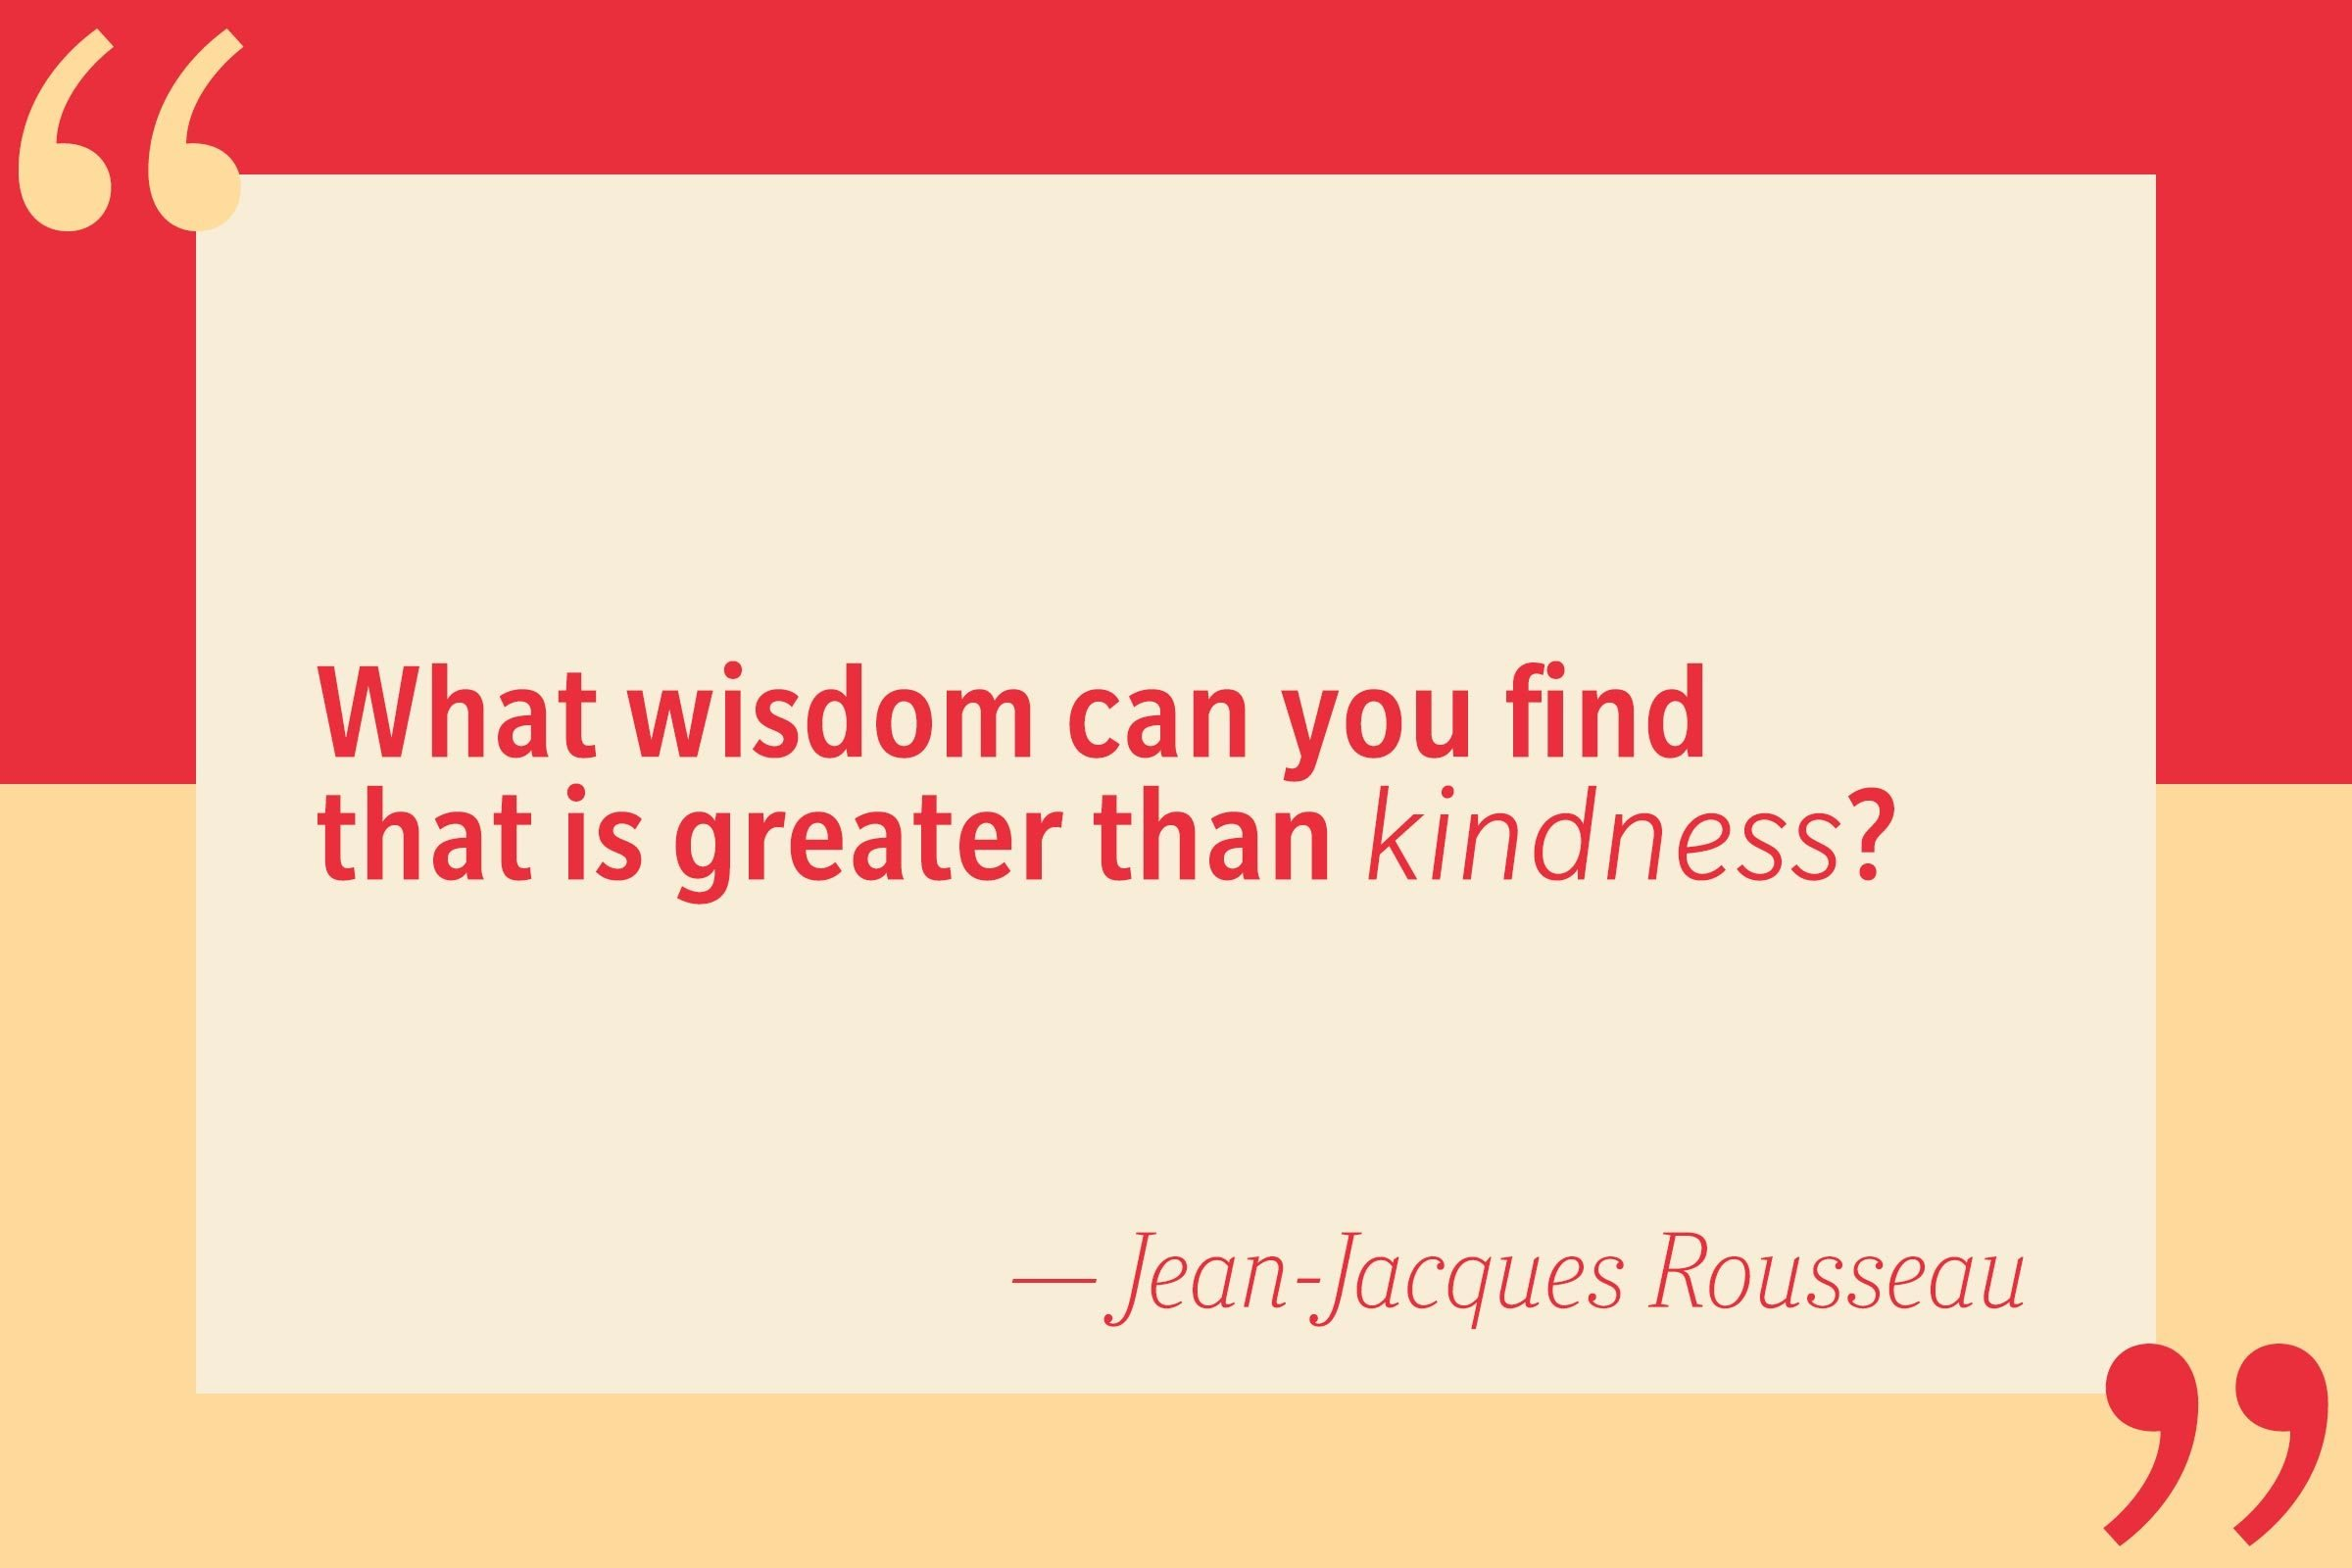 What wisdom can you find that is greater than kindness? — Jean-Jacques Rousseau